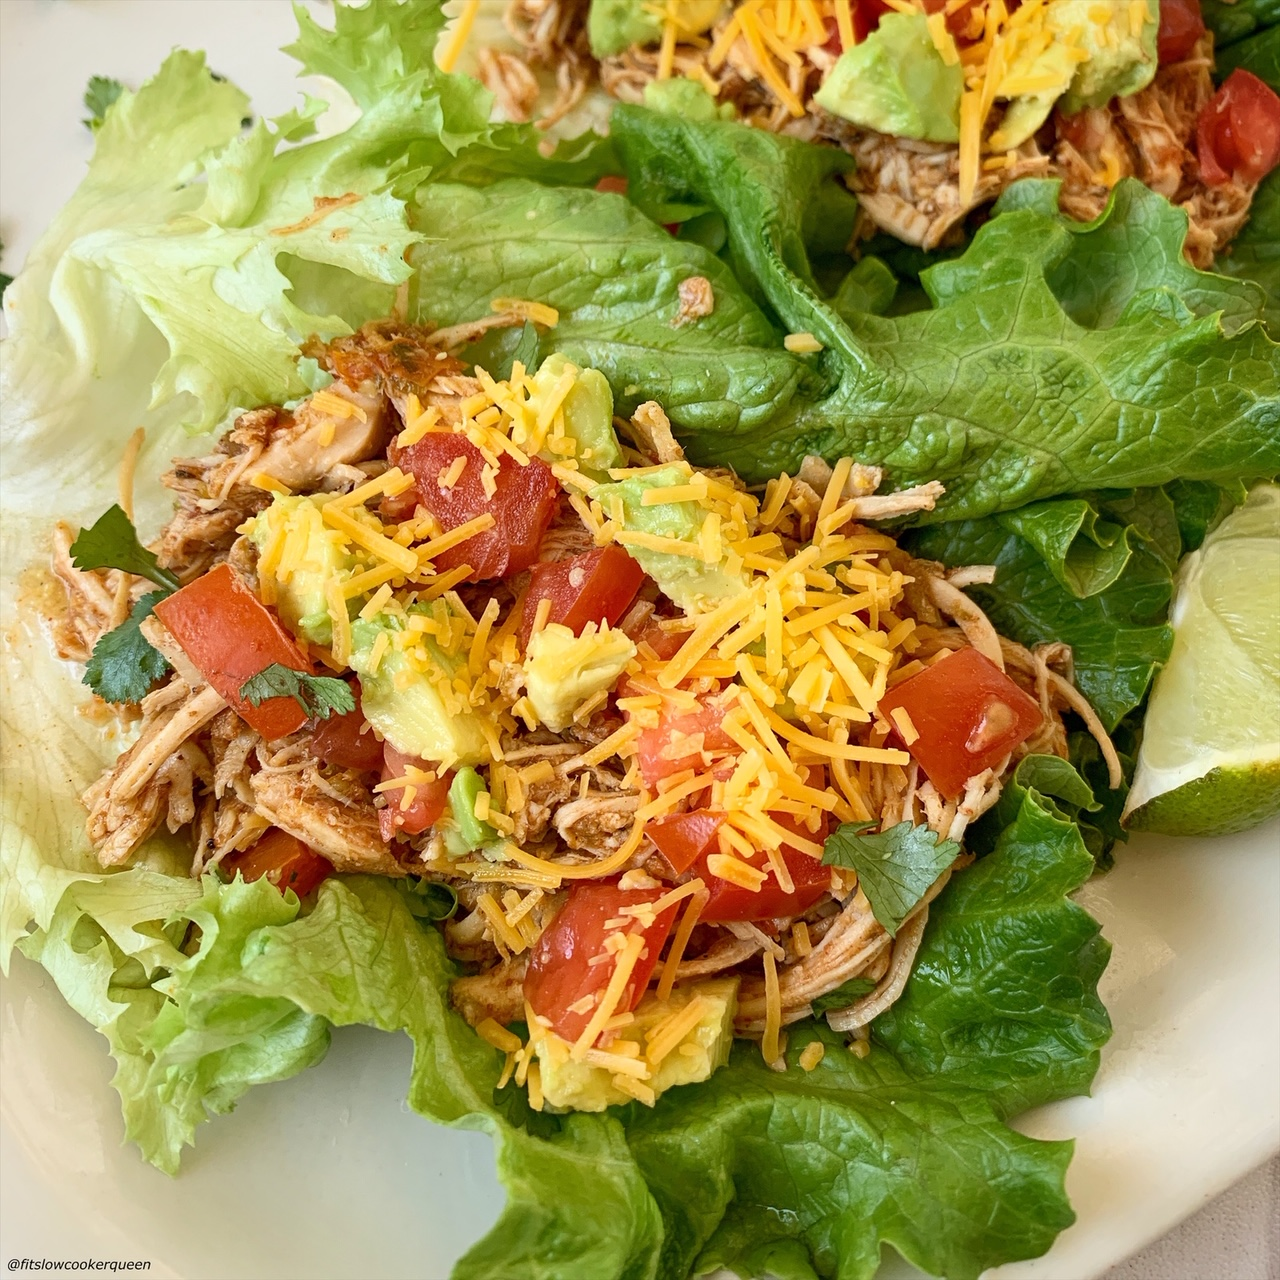 chicken tacos in a lettuce wrap topped with cheese, tomatoes, avocado, and lettuce